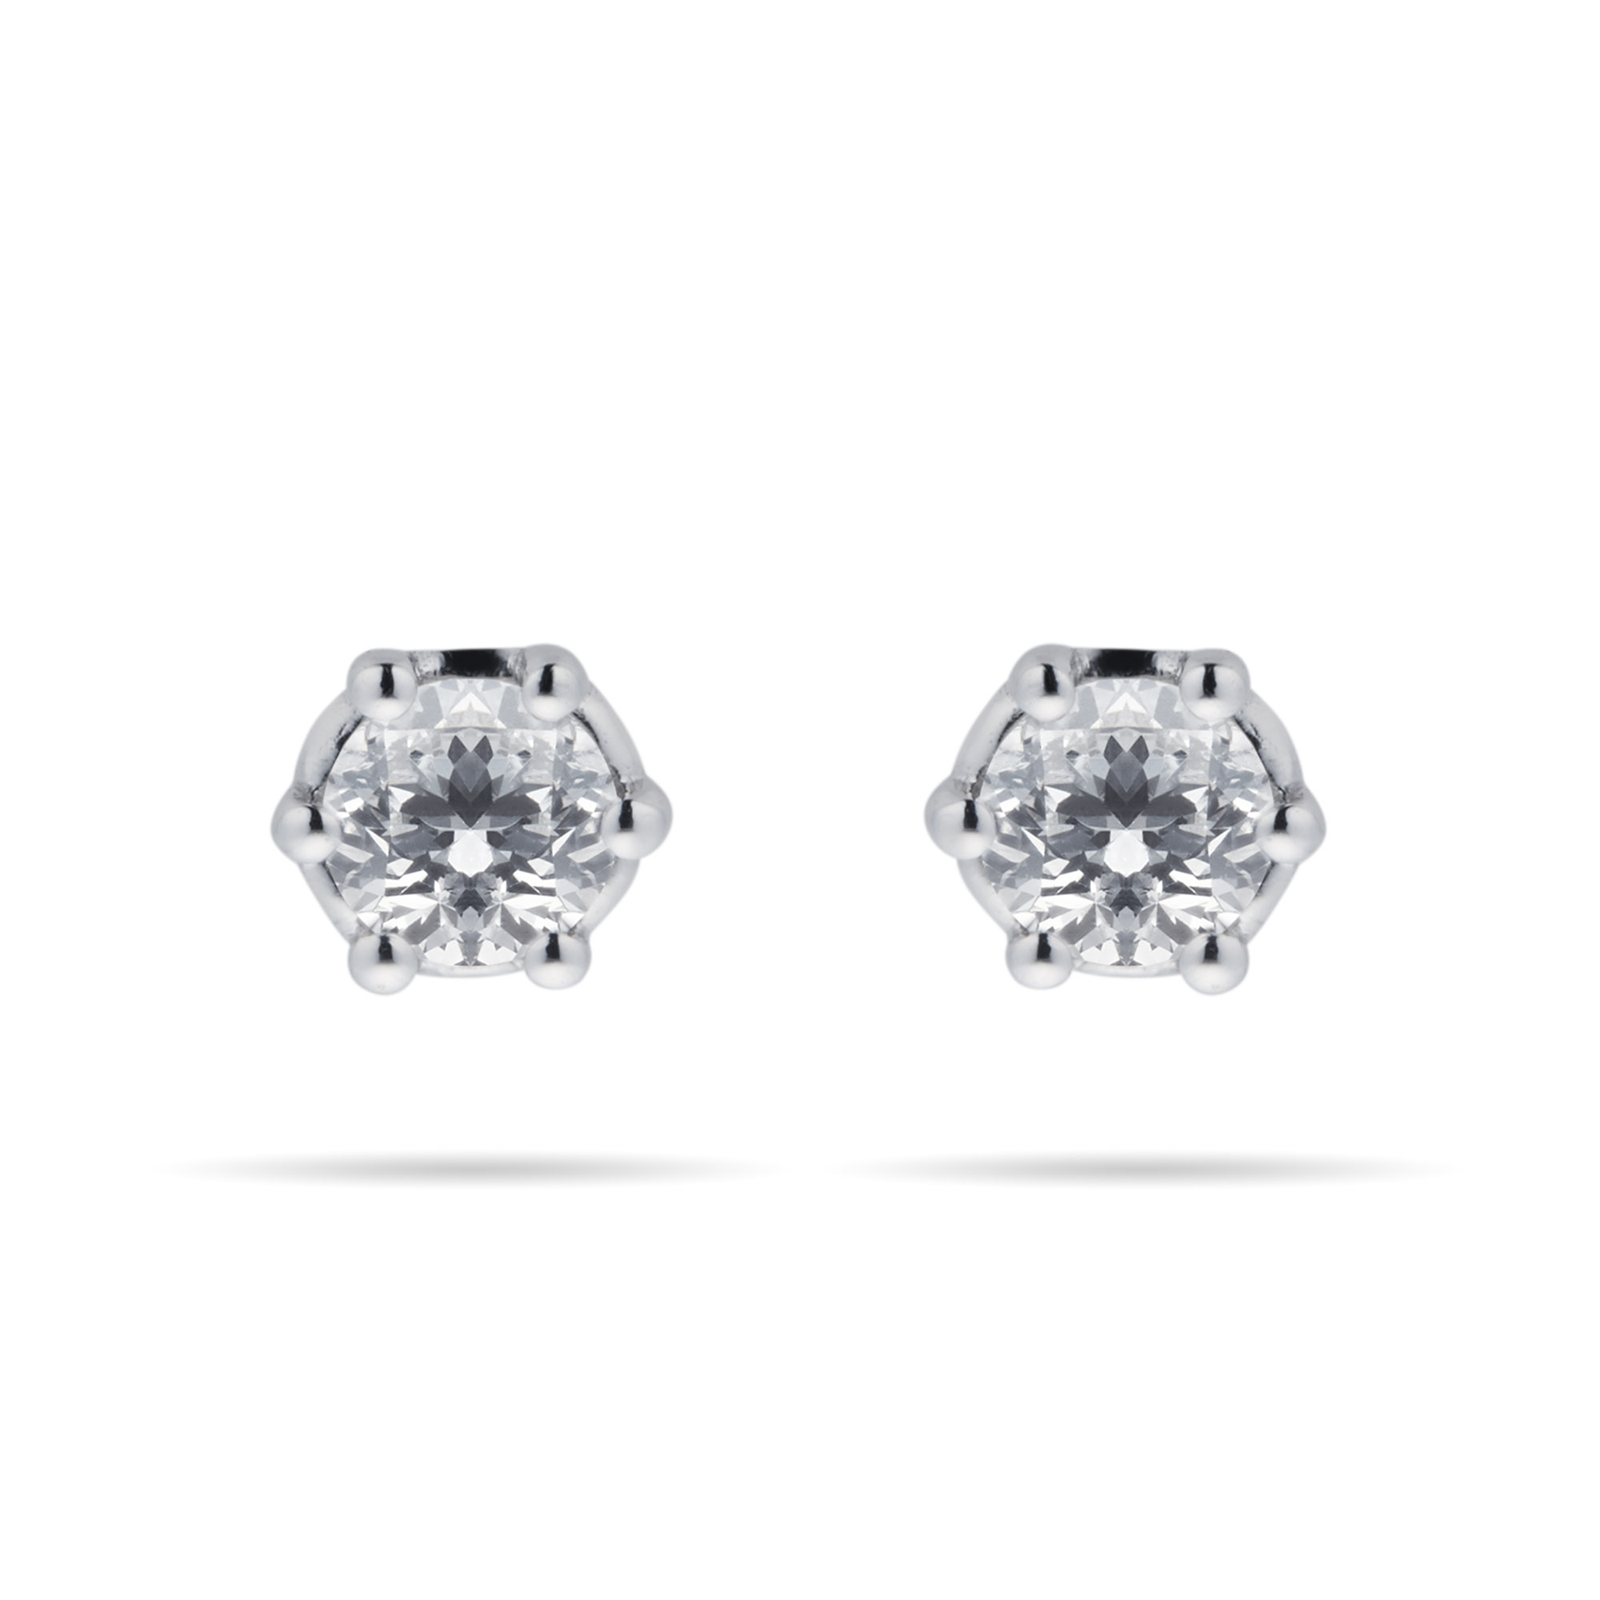 9ct White Gold 0.20cttw Bezel Set Illusion Stud Earrings